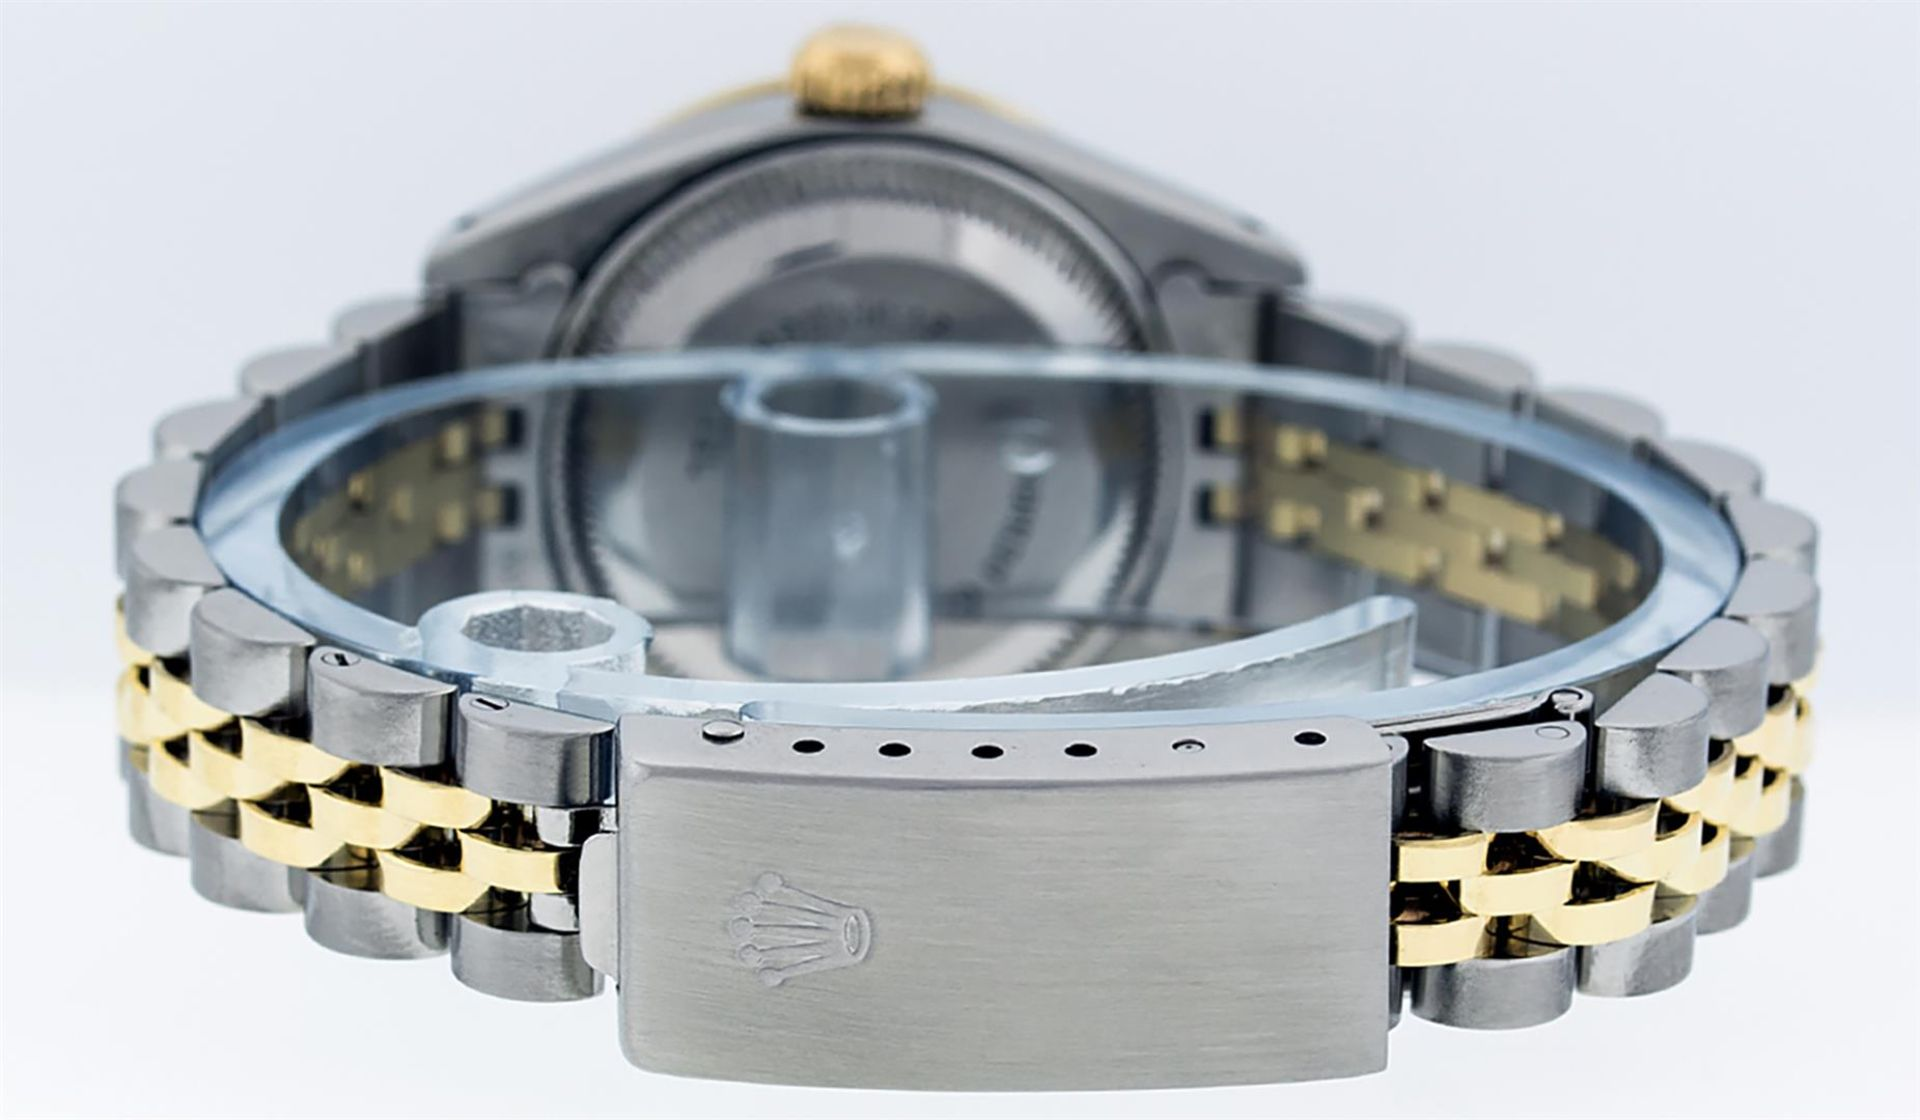 Rolex Ladies 2 Tone MOP Sapphire & Ruby 26MM Oyster Perpetual Datejust Wriswatch - Image 5 of 9